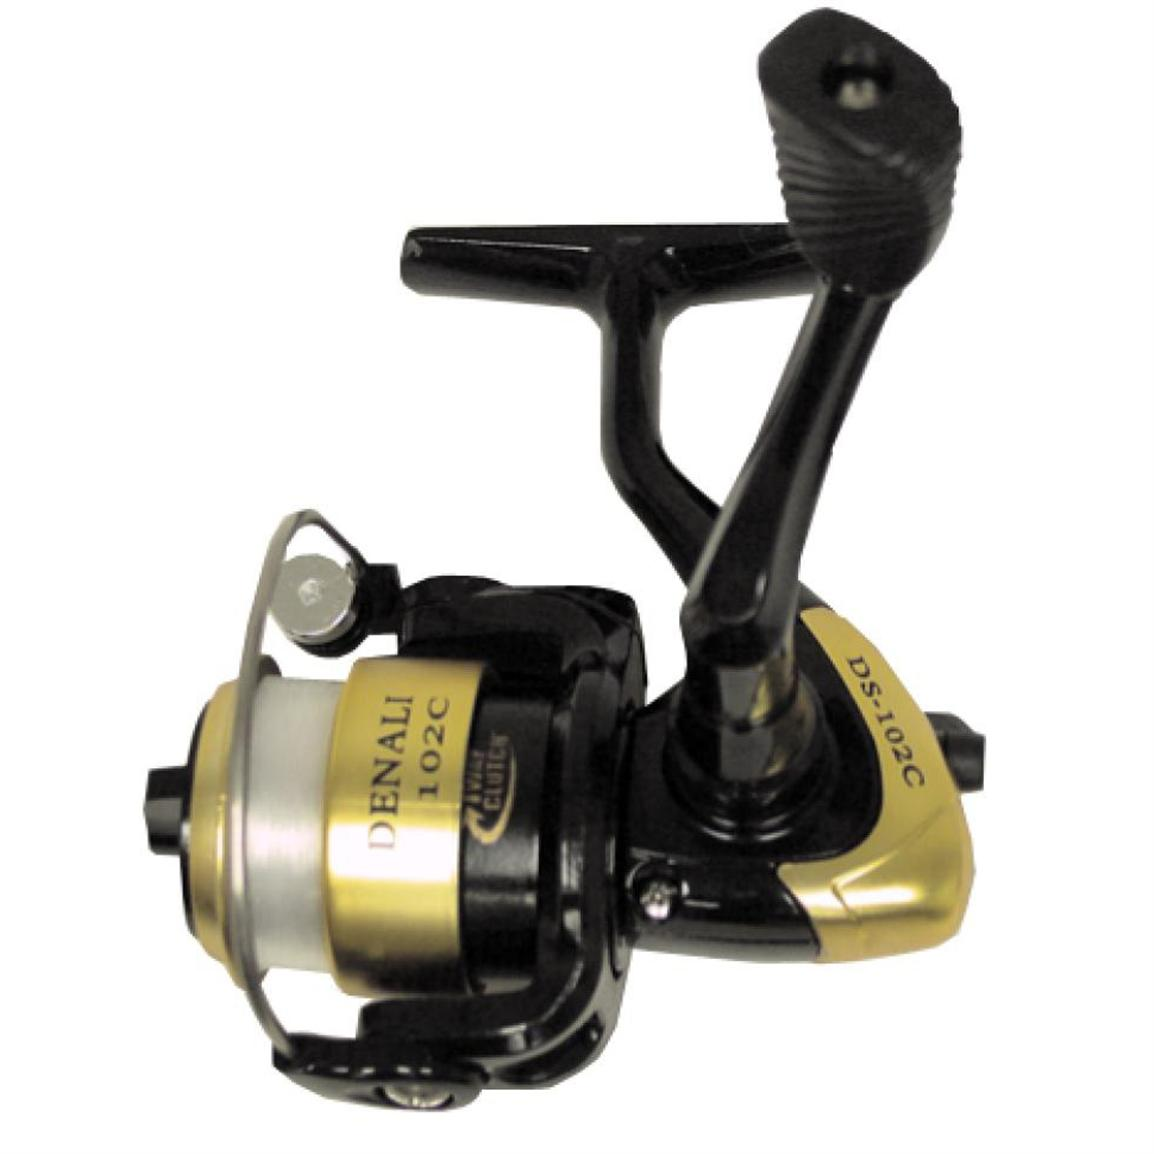 Hi tech denali spinning reel 154647 ice fishing rods for Best ice fishing reel